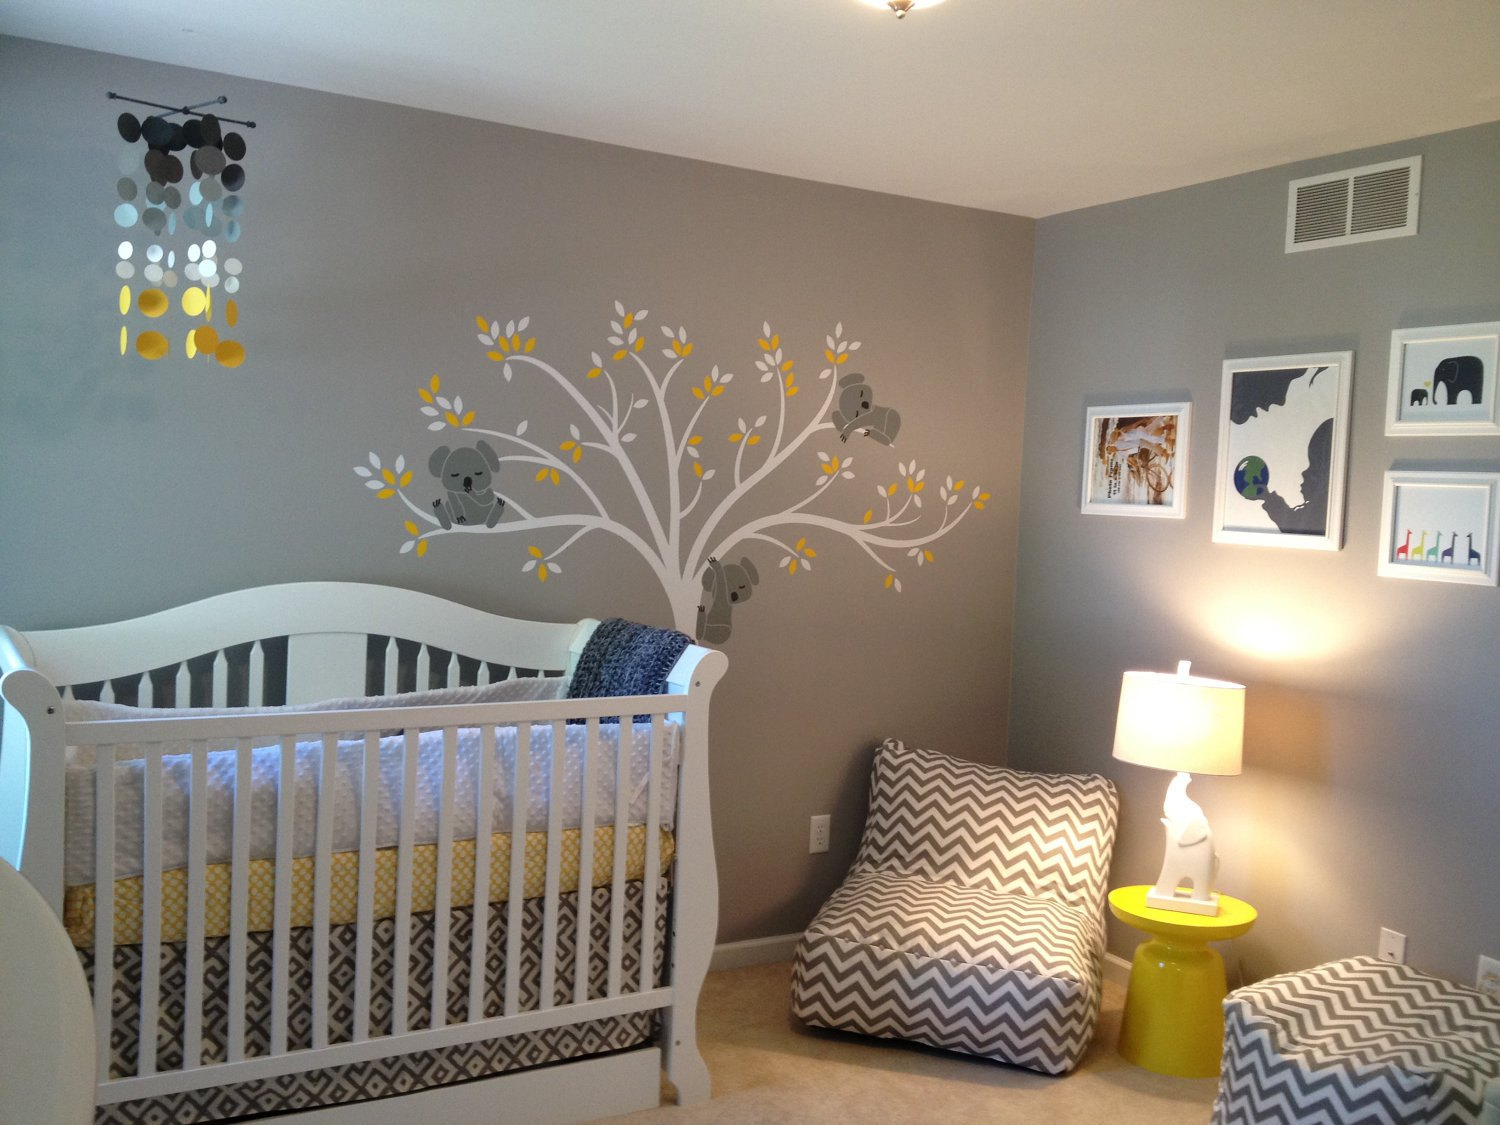 What Is The Best Nursery Wall Decor For Both Boys And Girls? |  PrintMePoster.com Blog